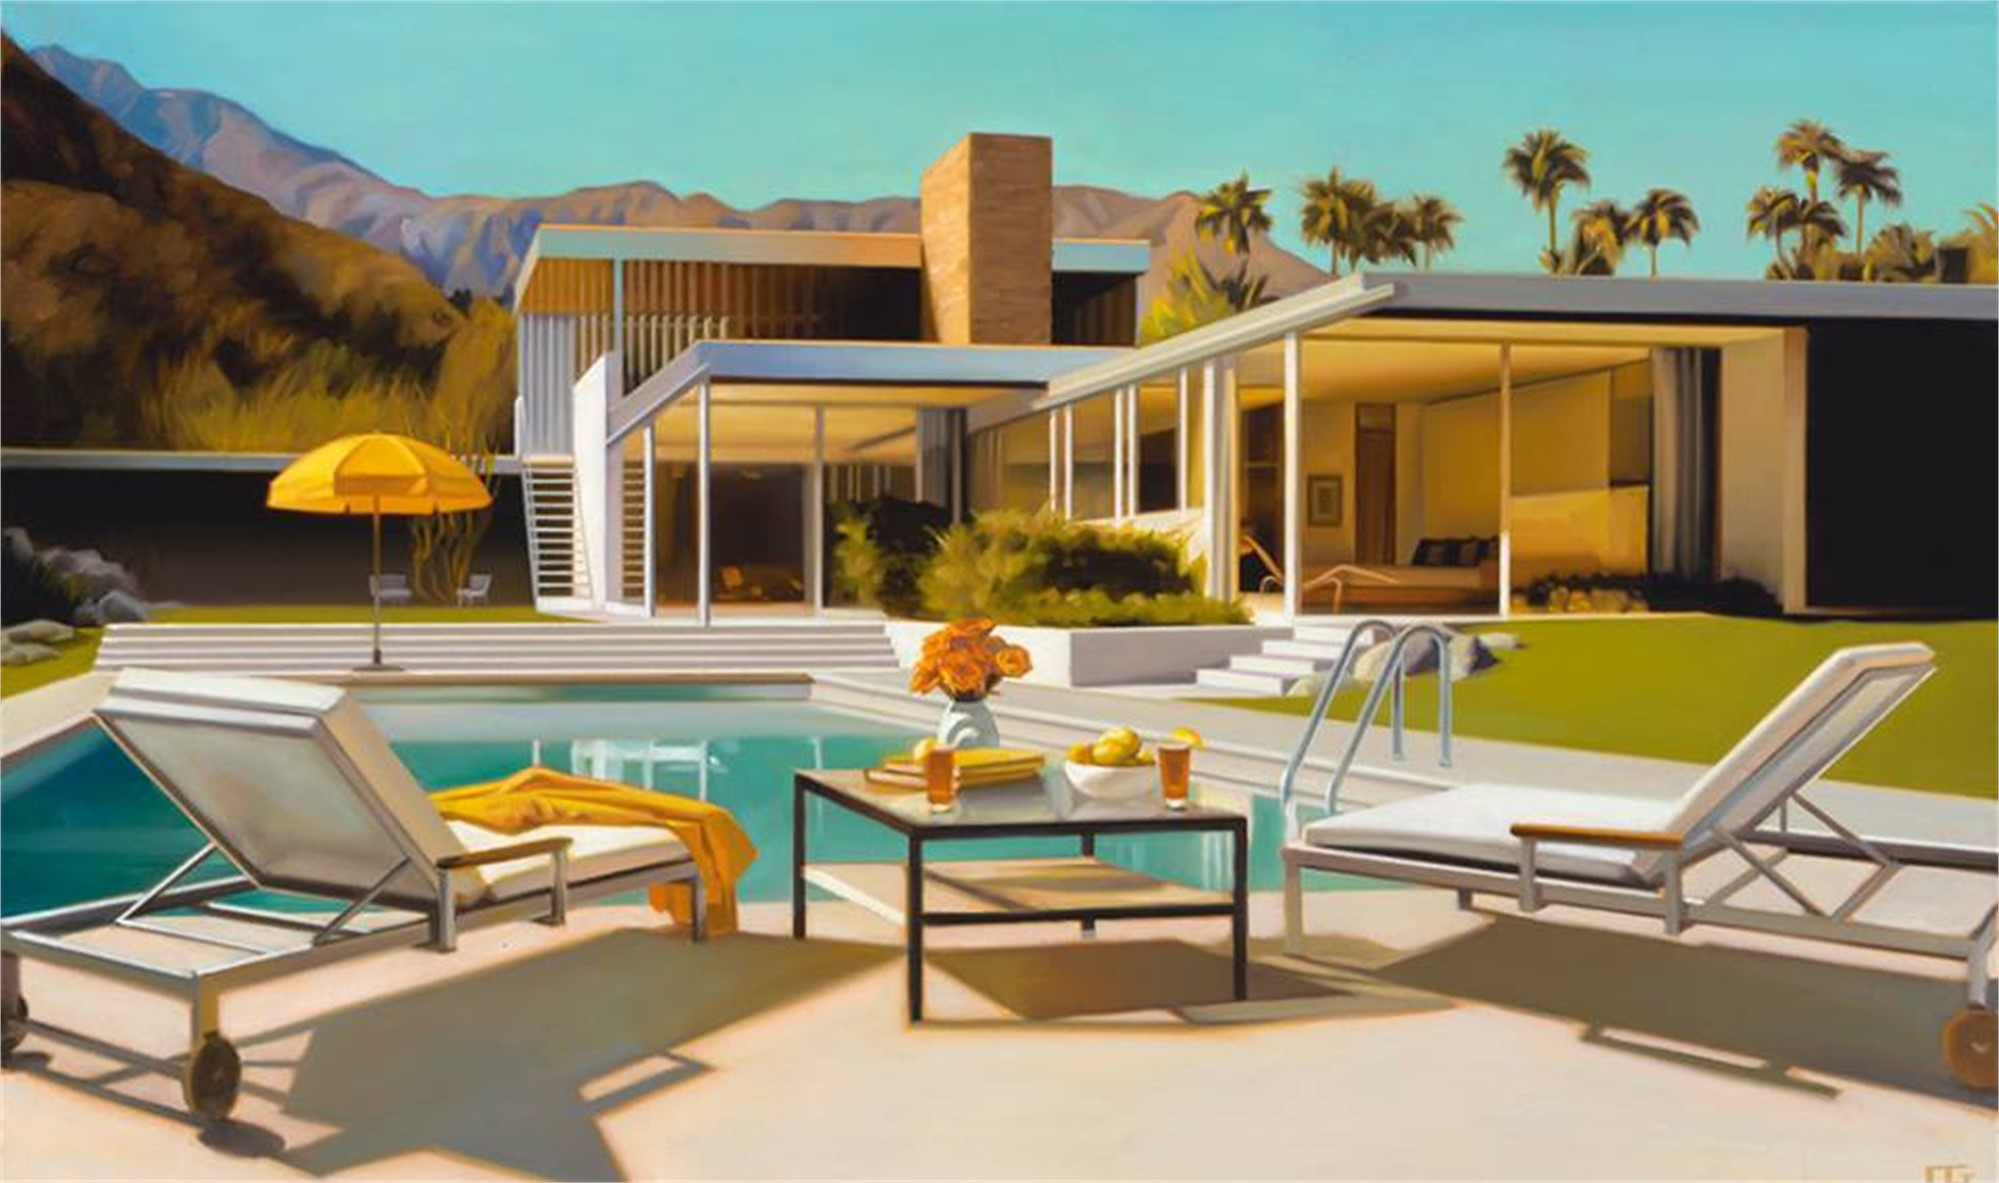 Perfect Day (S/N) by Carrie Graber